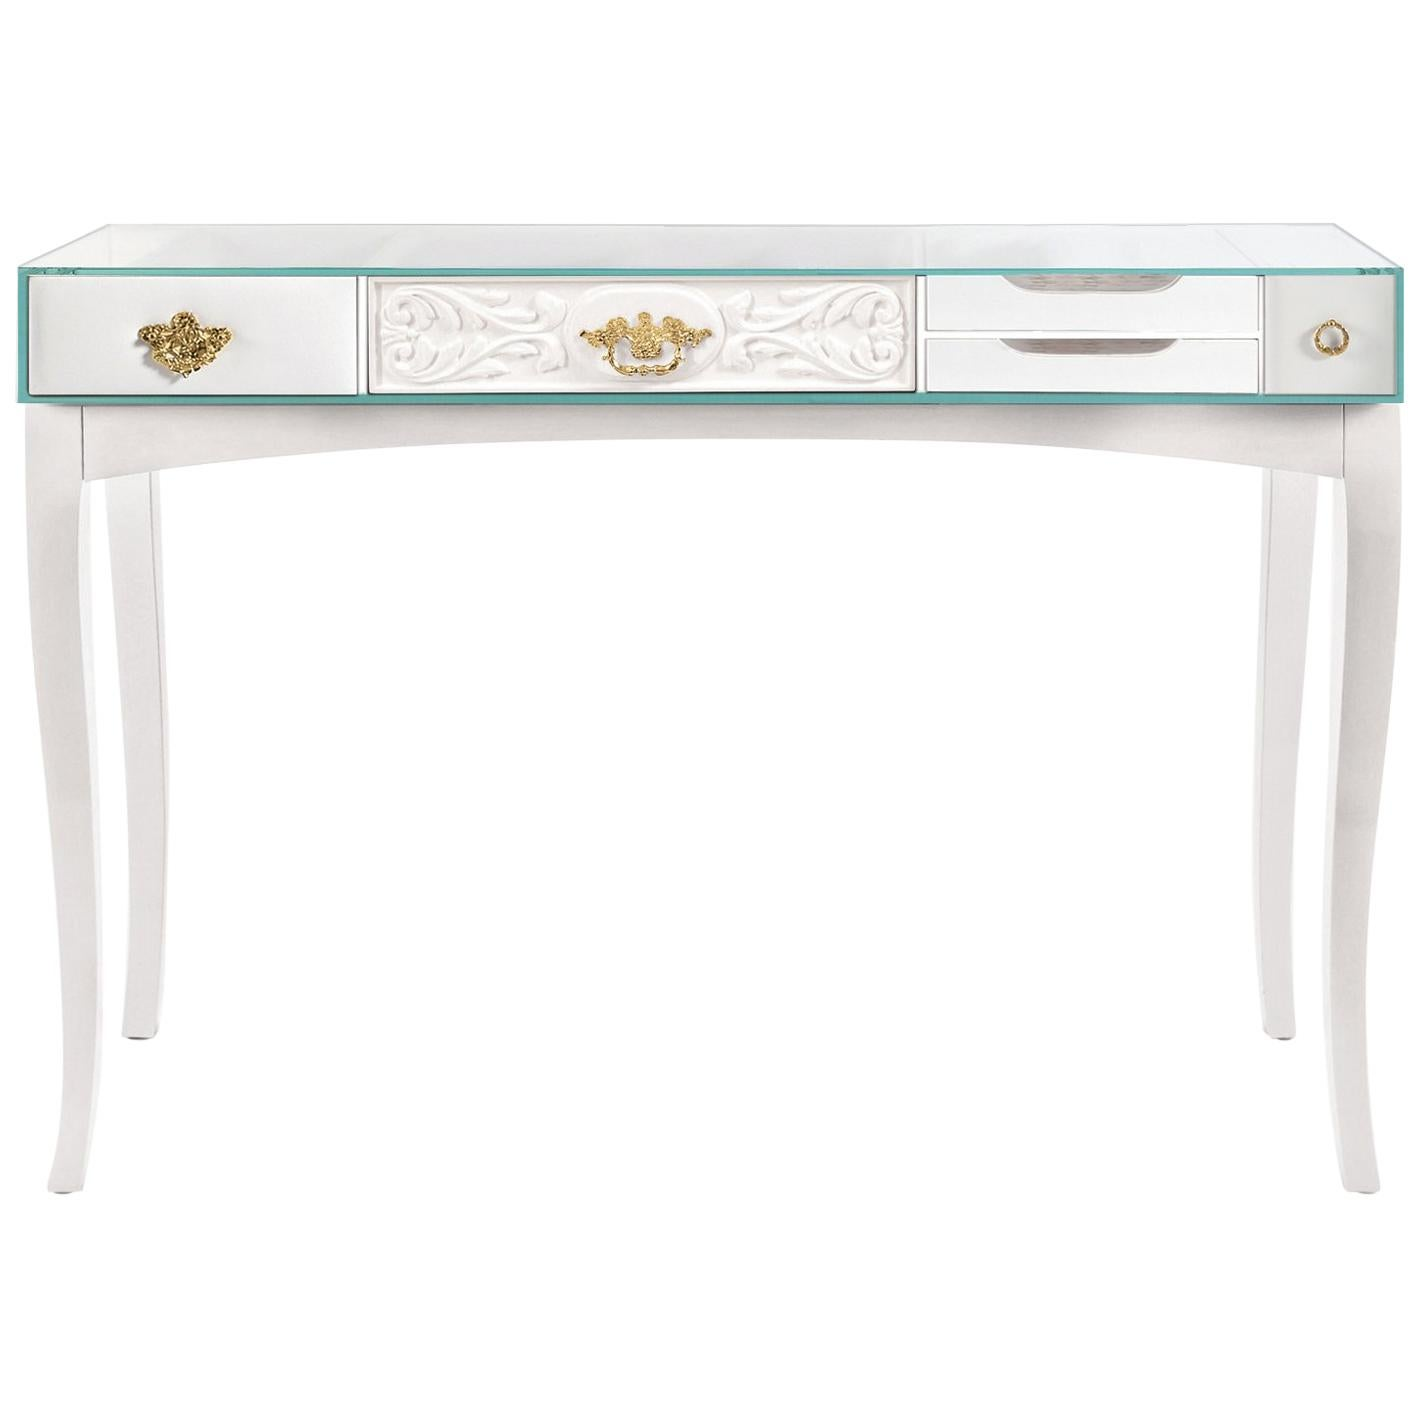 Soho White Console Table With Glass And Brass Detail By Boca Do Lobo For  Sale